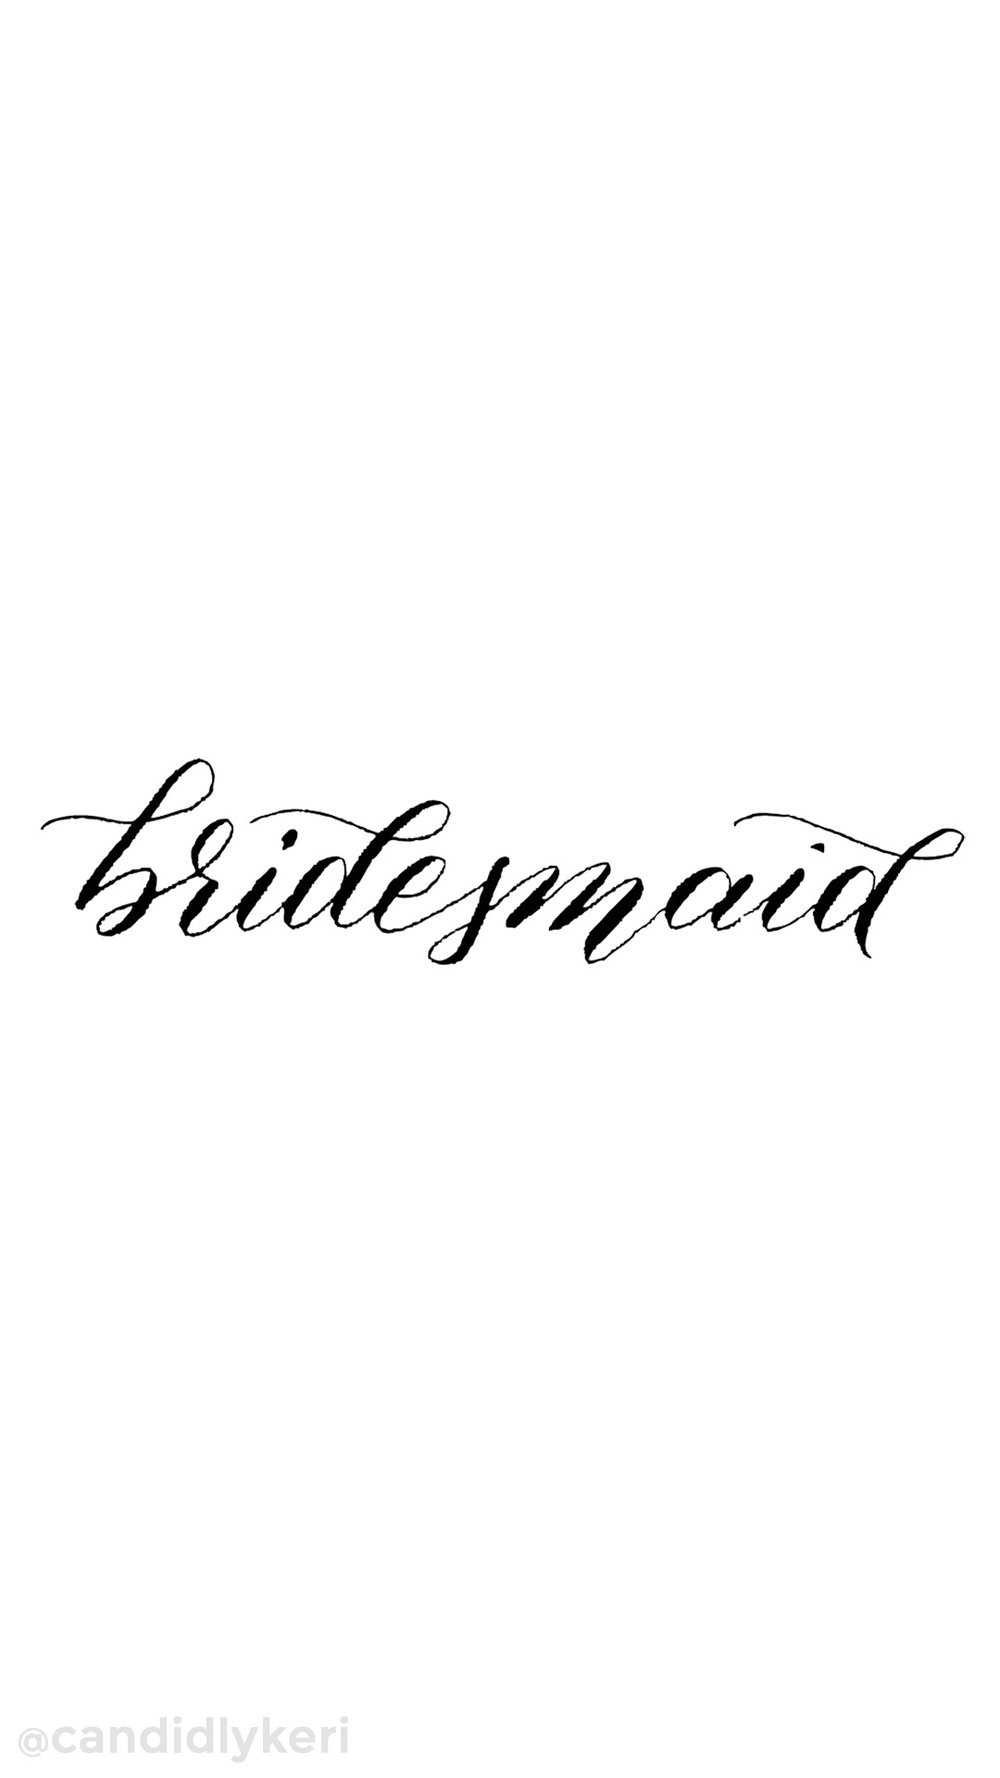 Bridal wallpaper black and white free download mobile desktop computer